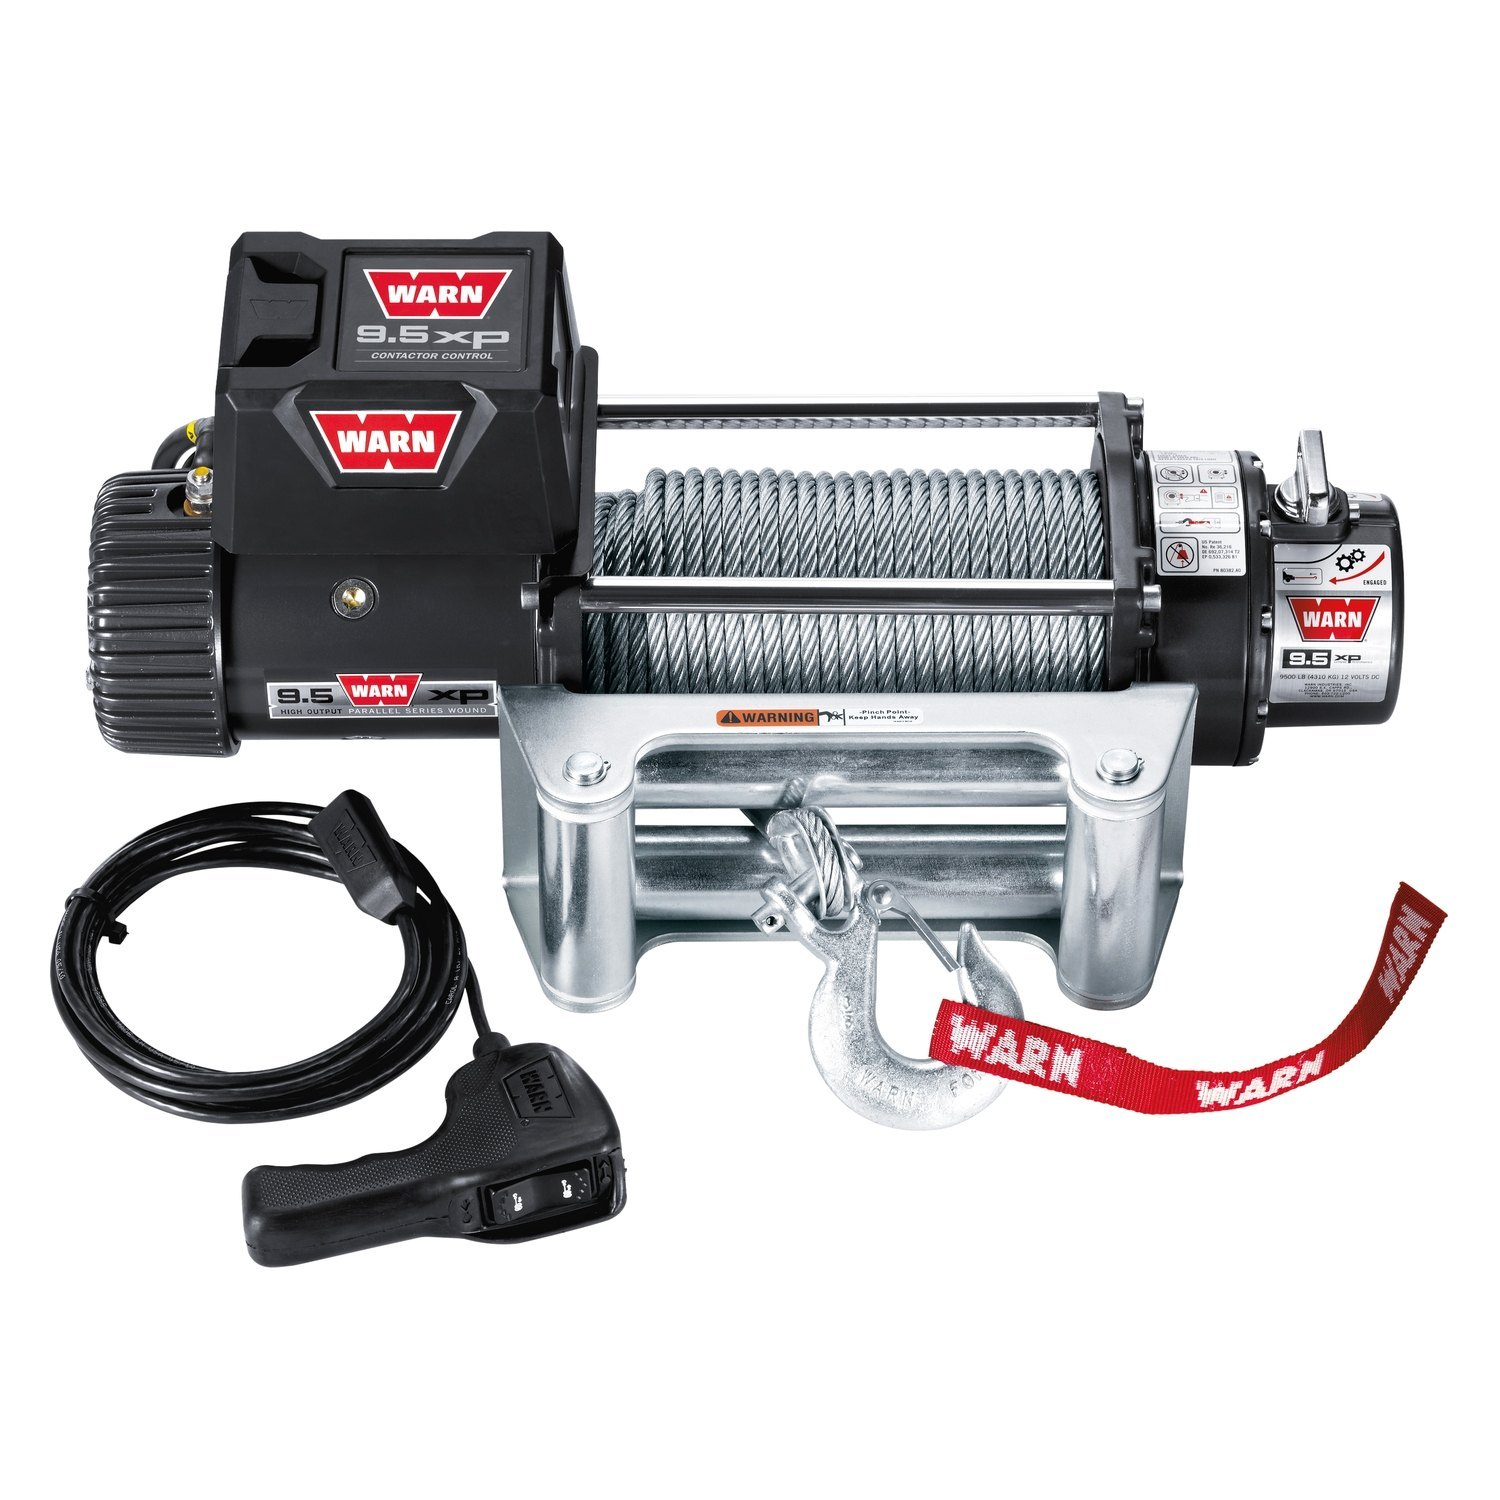 hight resolution of warn winch with synthetic spydura